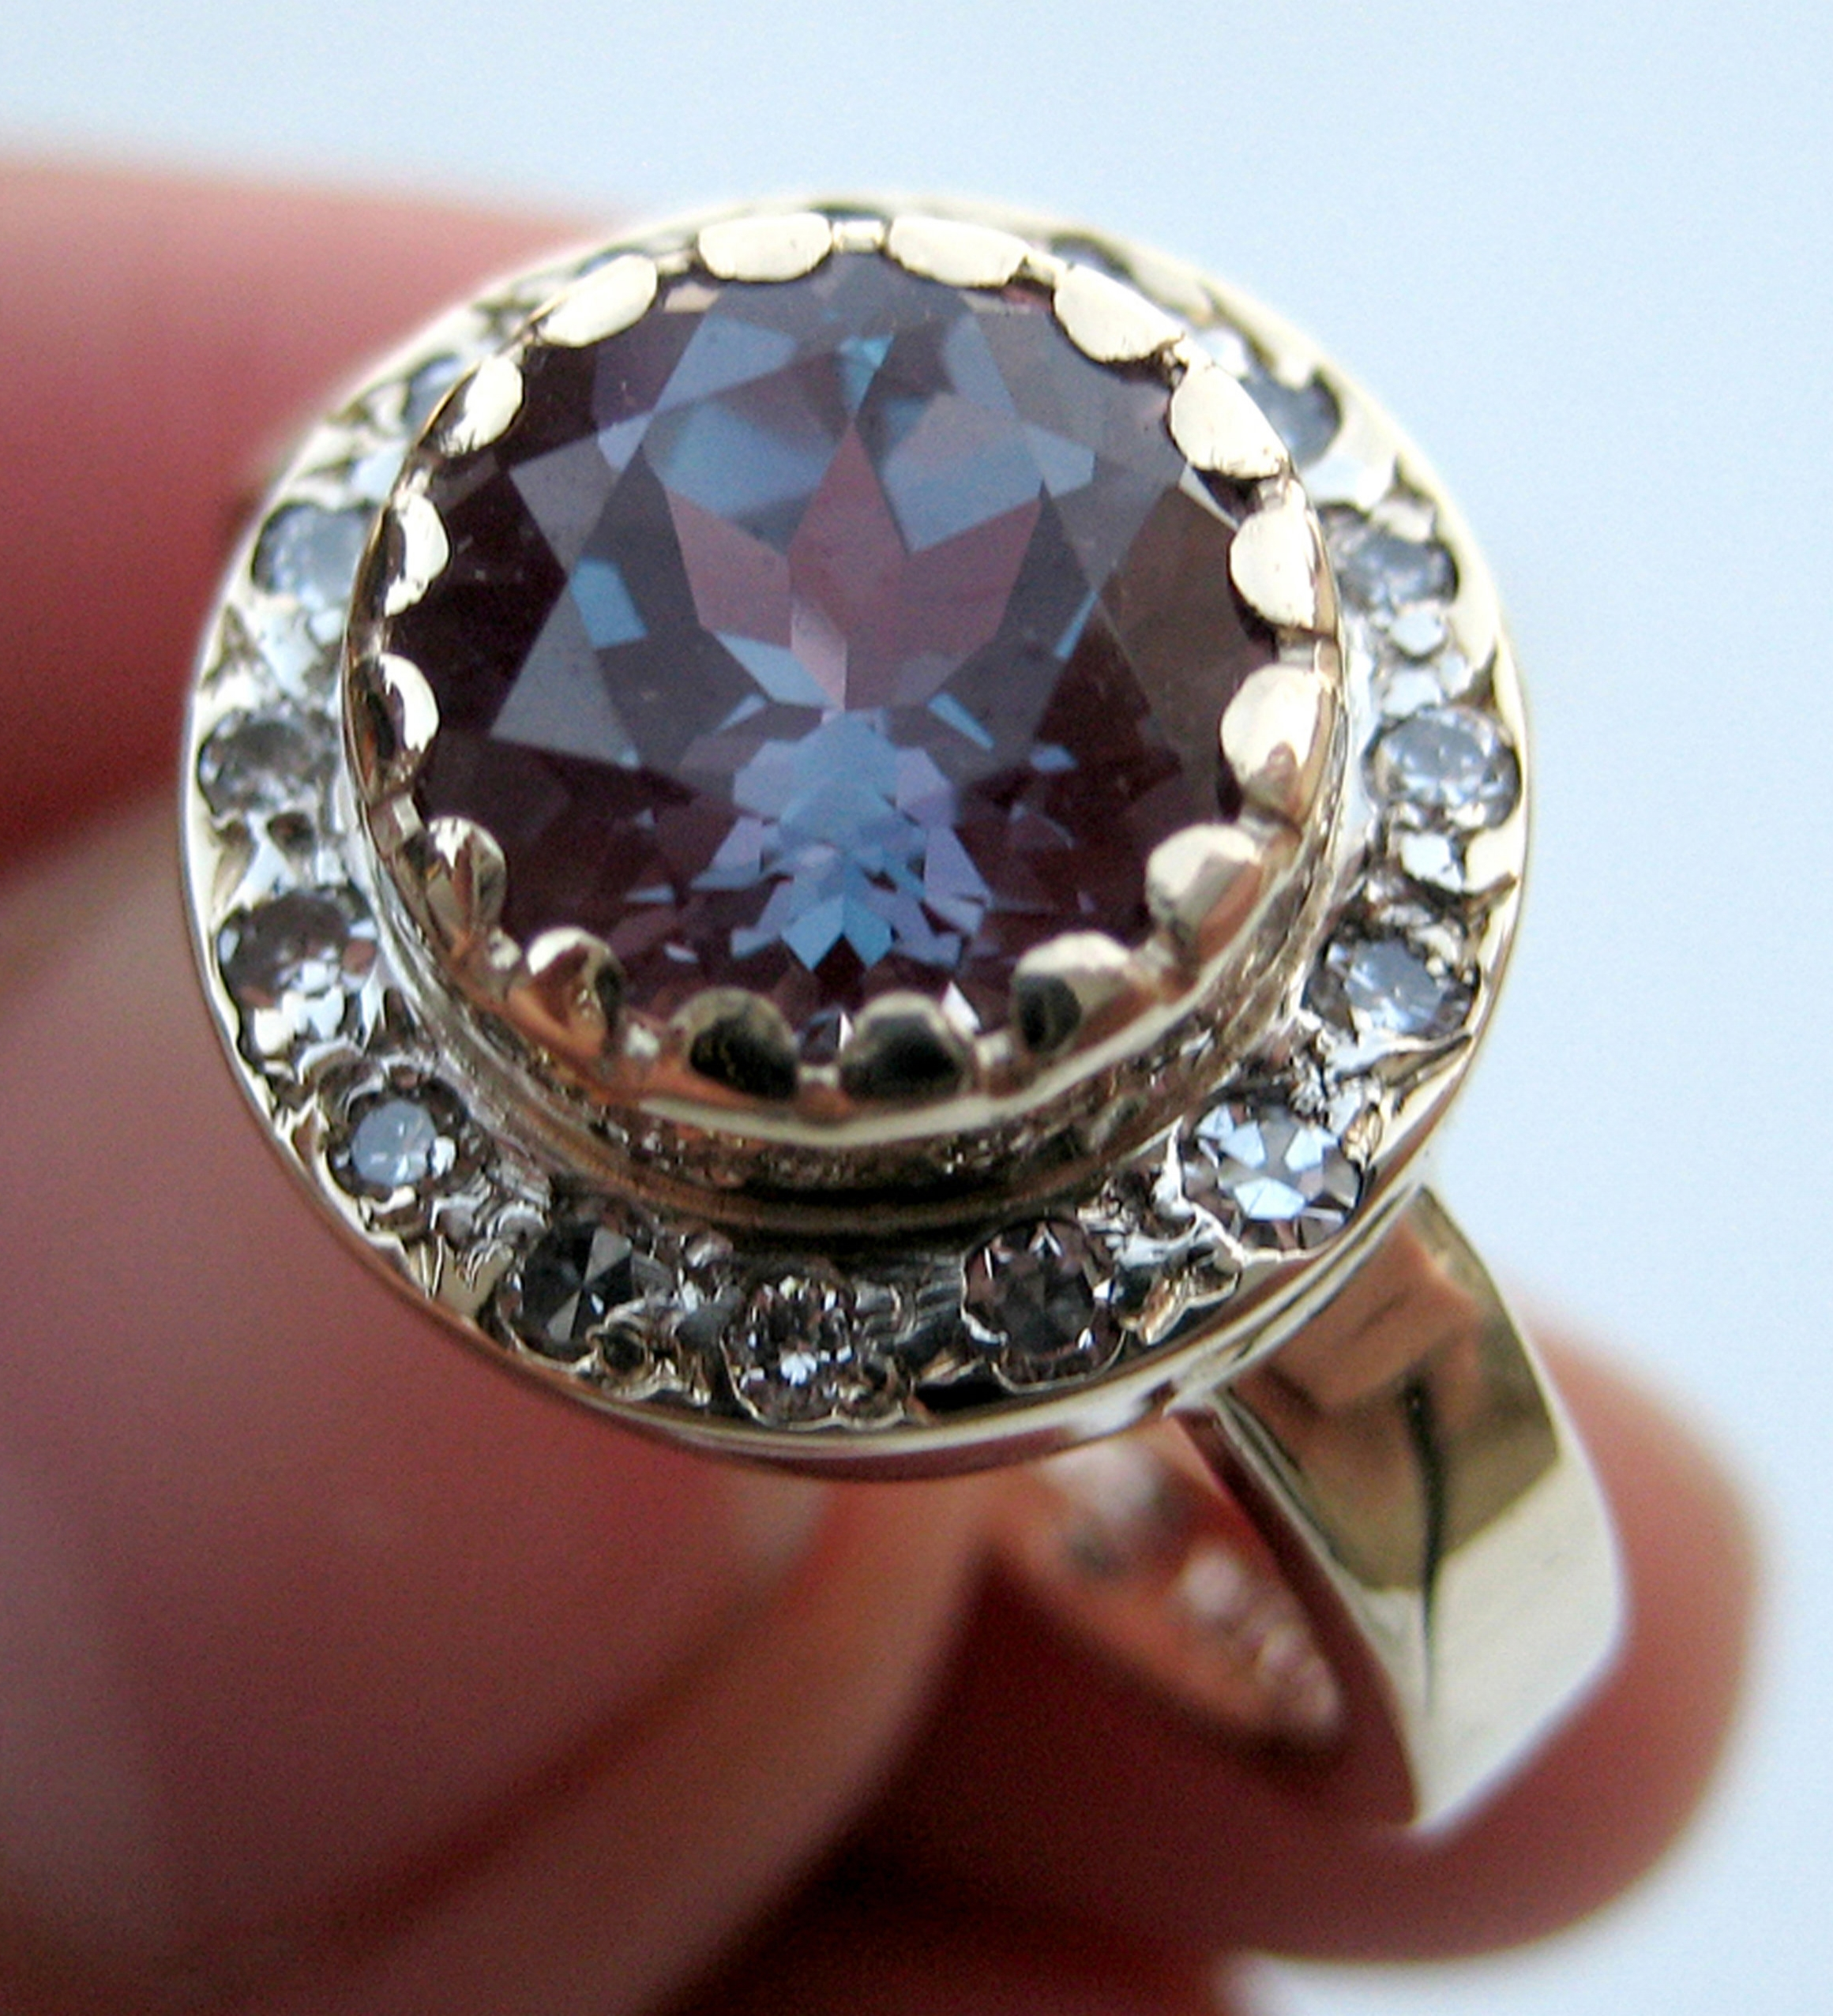 Lab grown Alexandrite, diamond, 14k yellow gold